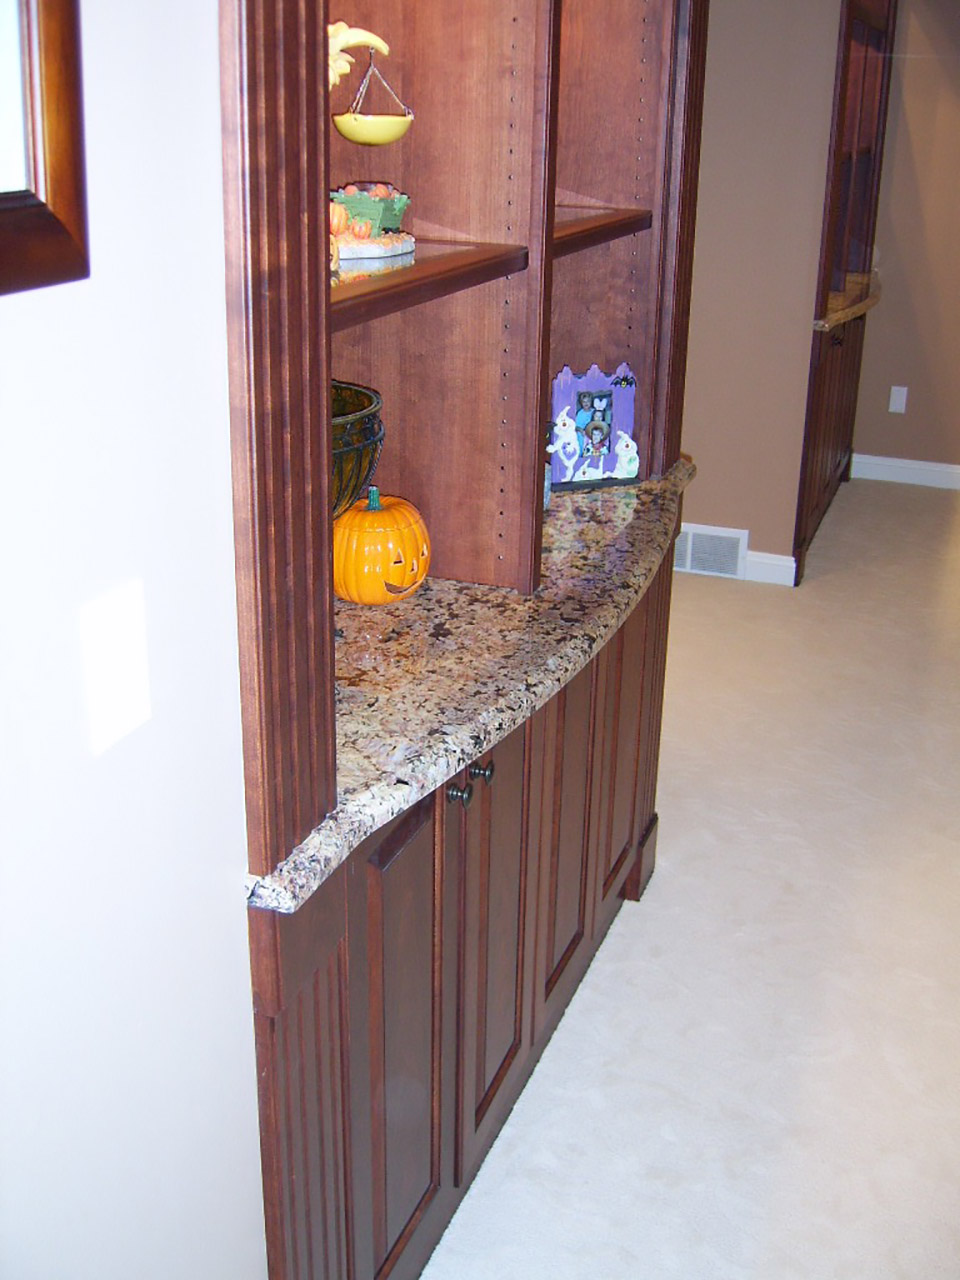 cabinets-marble-cherry-wood-working.jpg